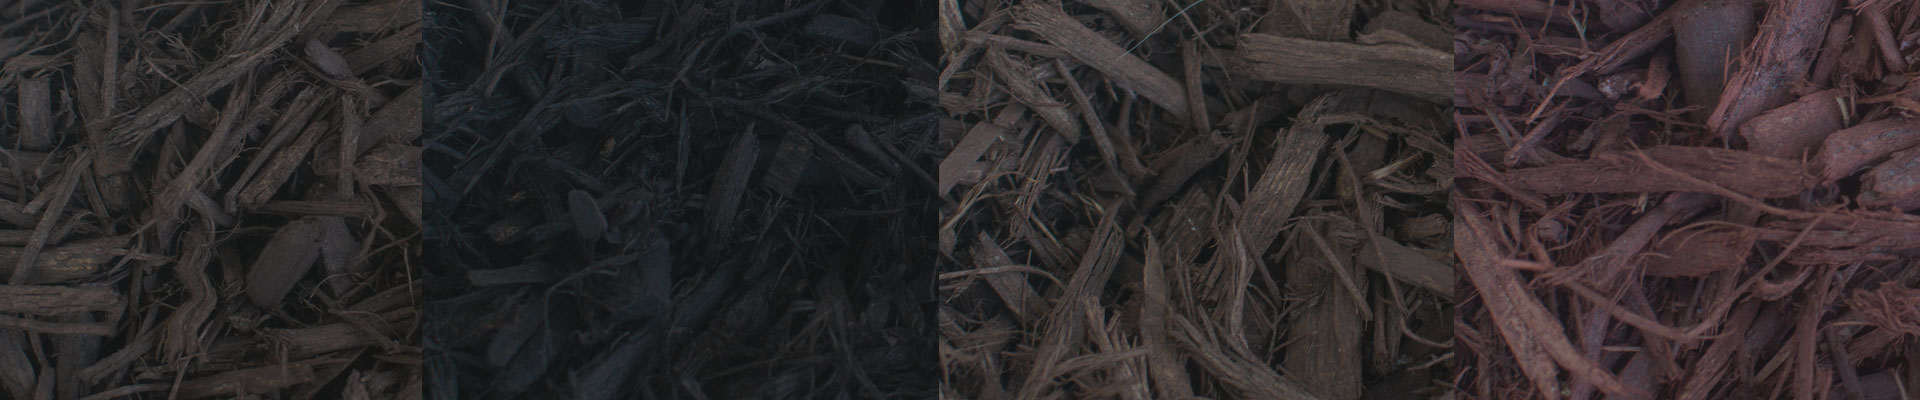 Compost banner image